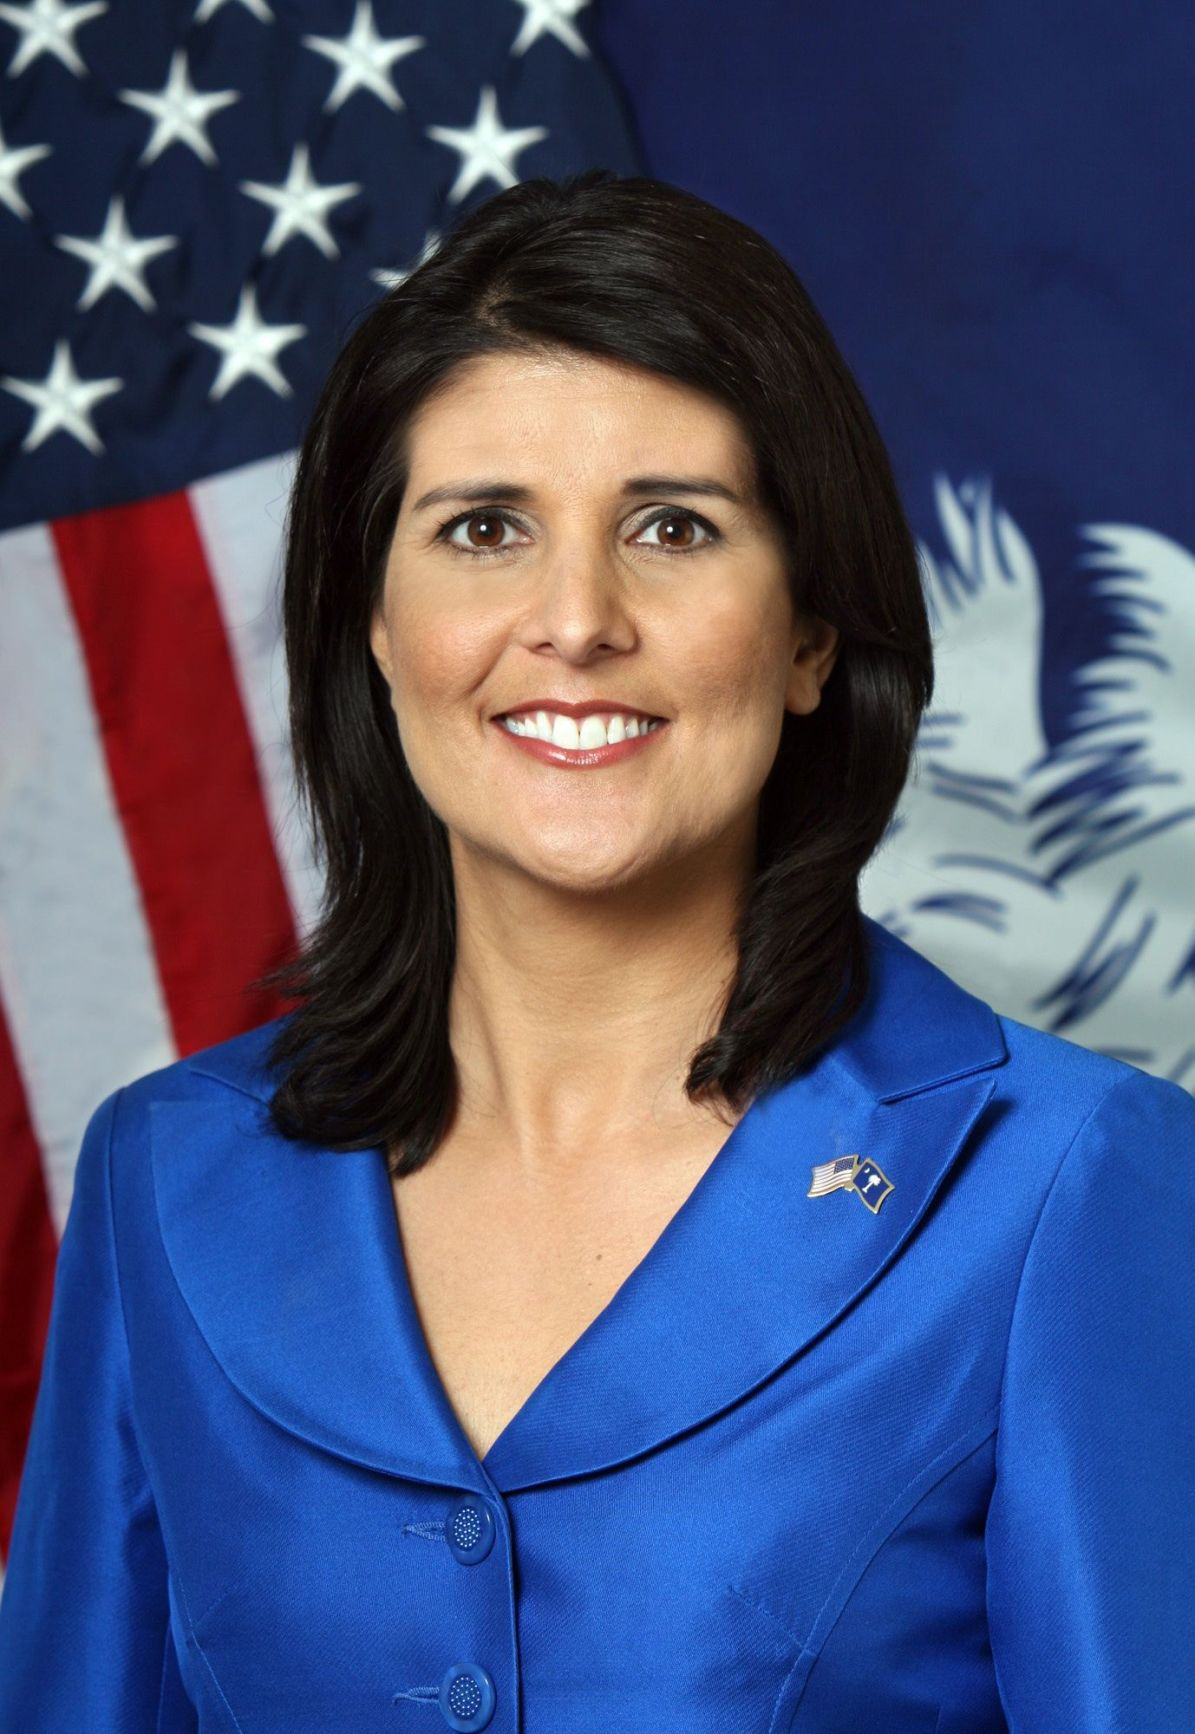 Gov. Nikki Haley: American dream is alive and well in South Carolina